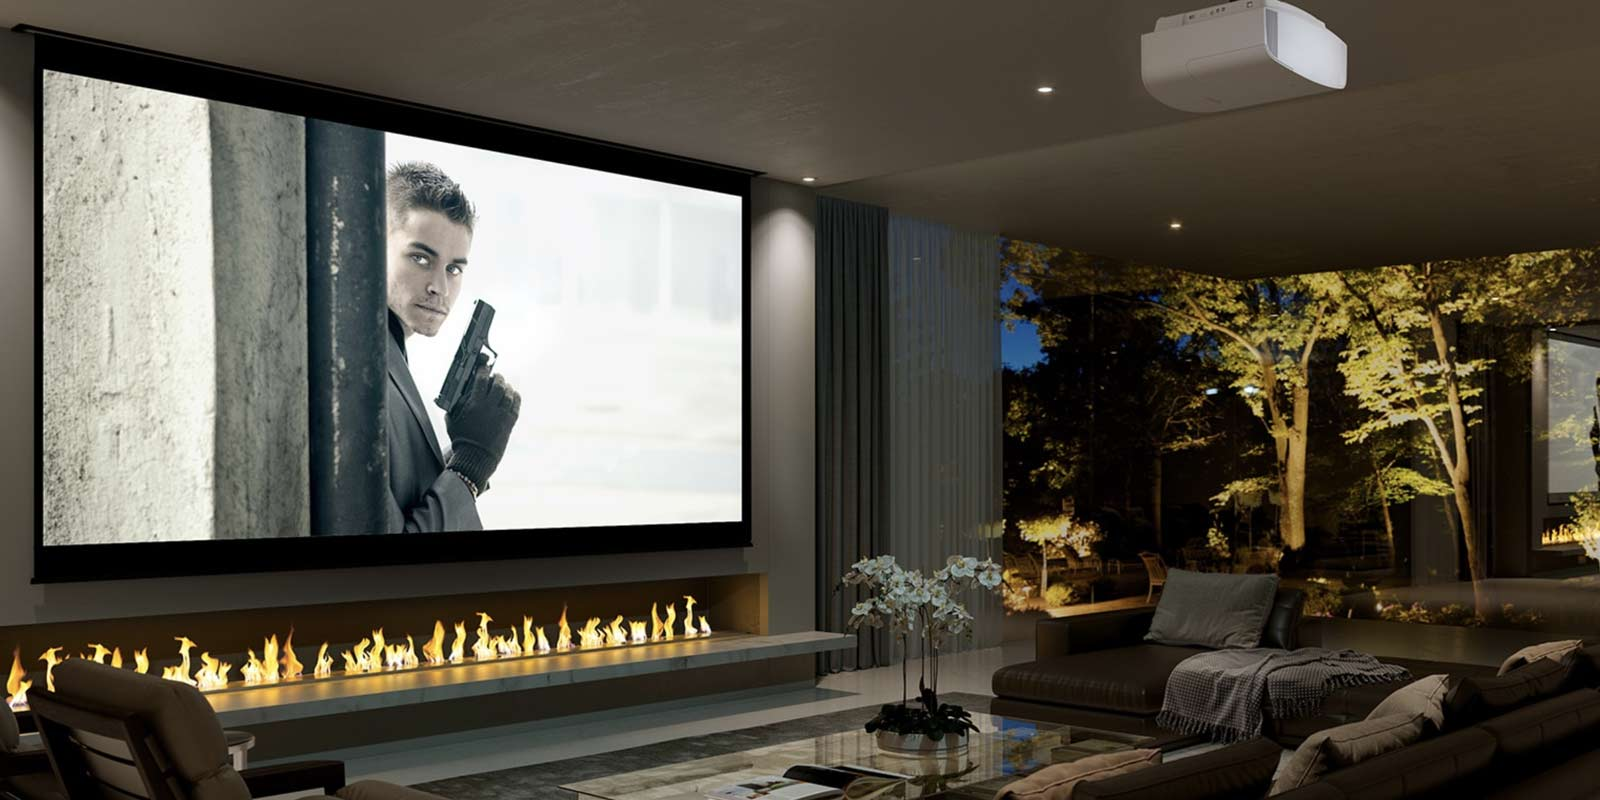 Sony-VPL-VW590ES-projector-lifestyle